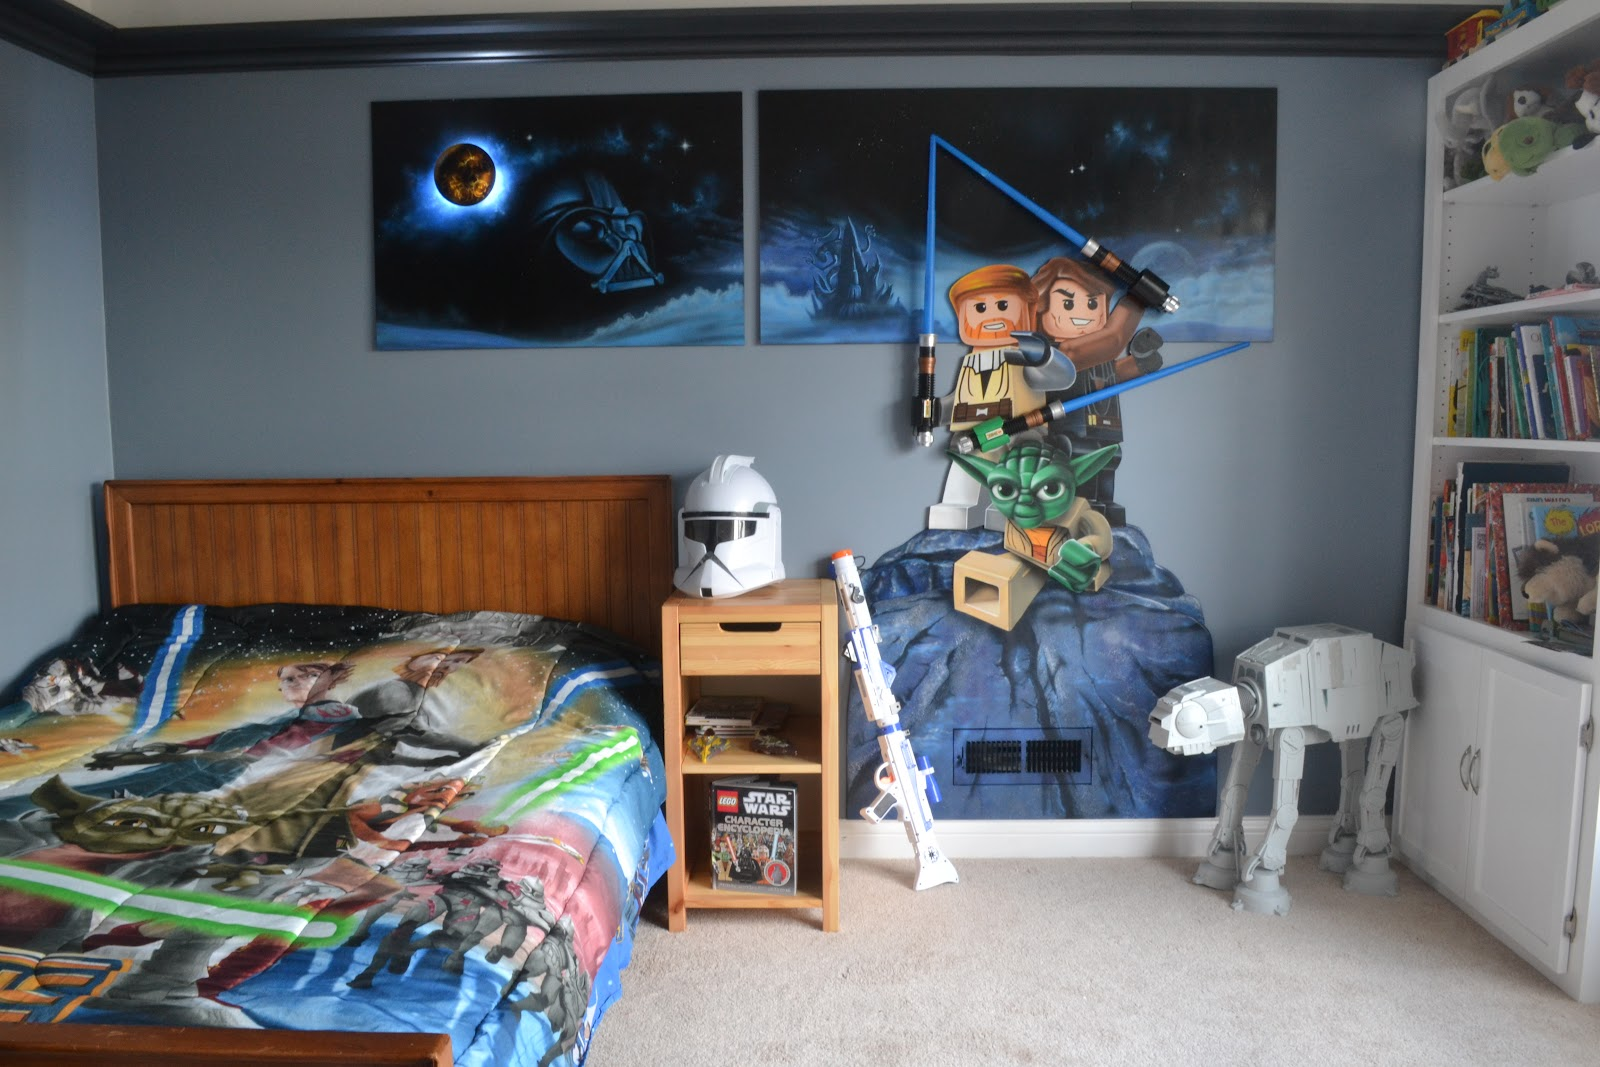 lego star wars room decor